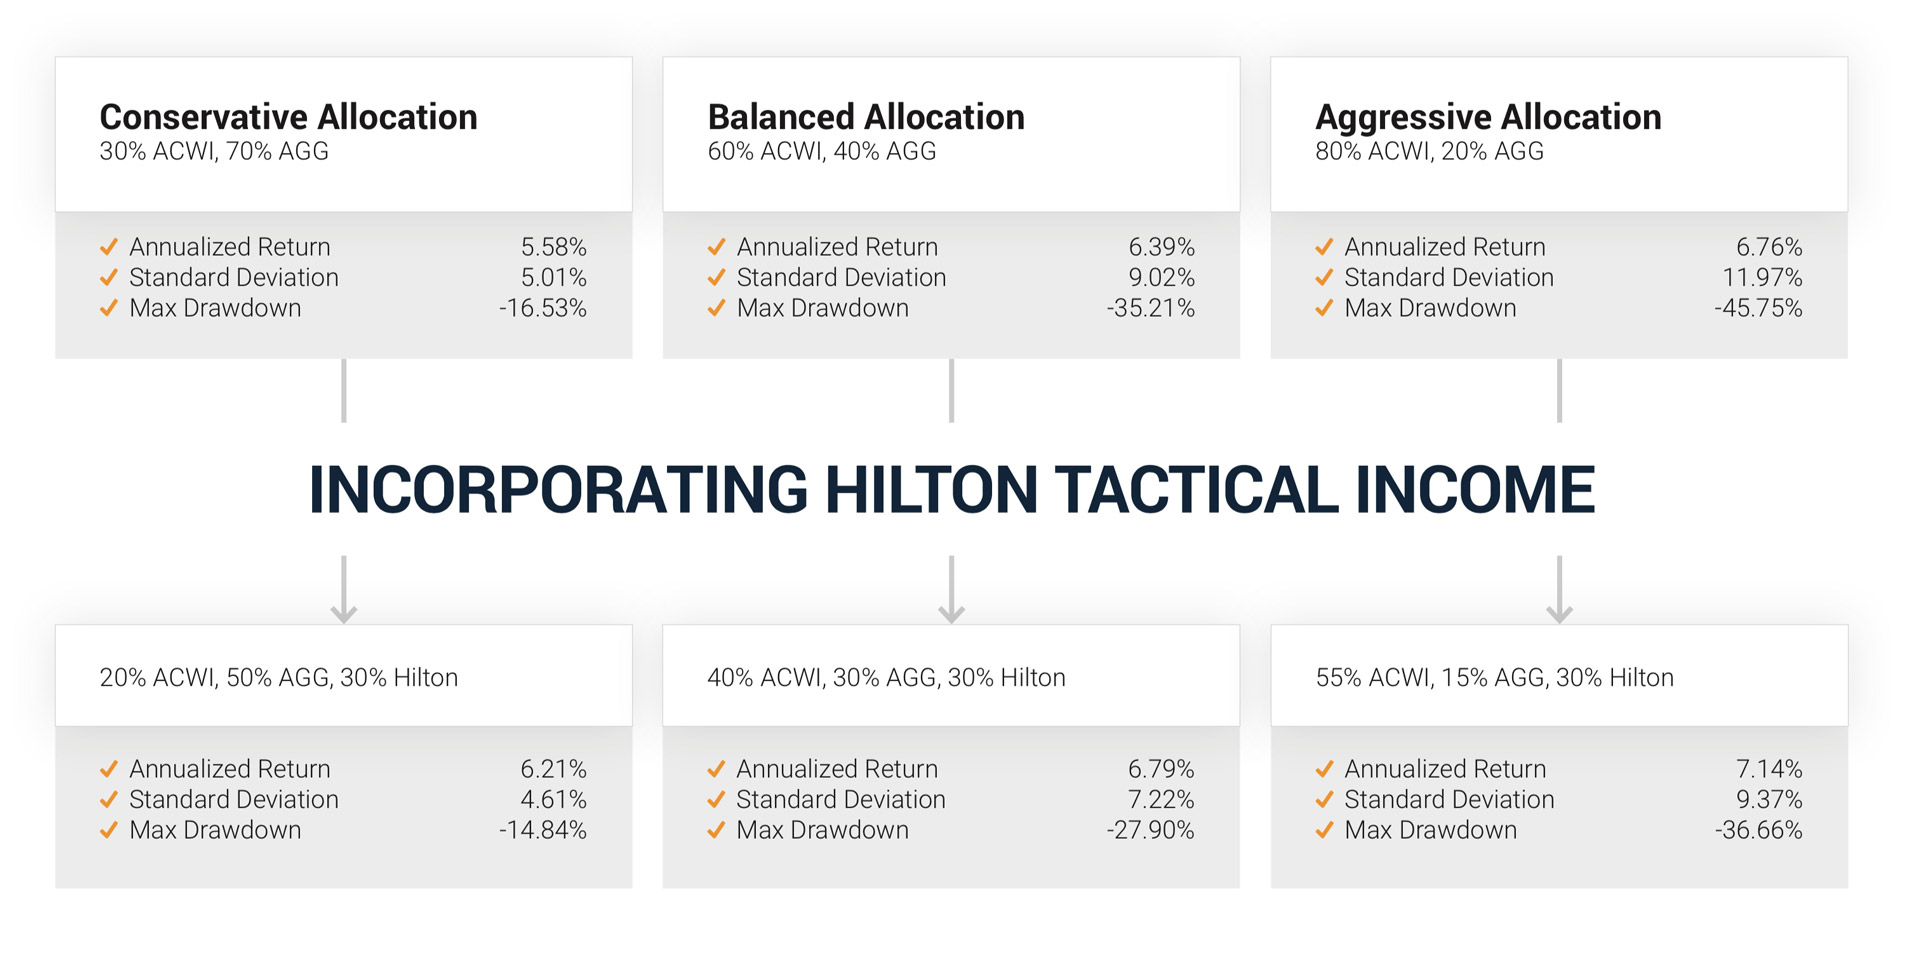 Incorporating Hilton Tactical Income